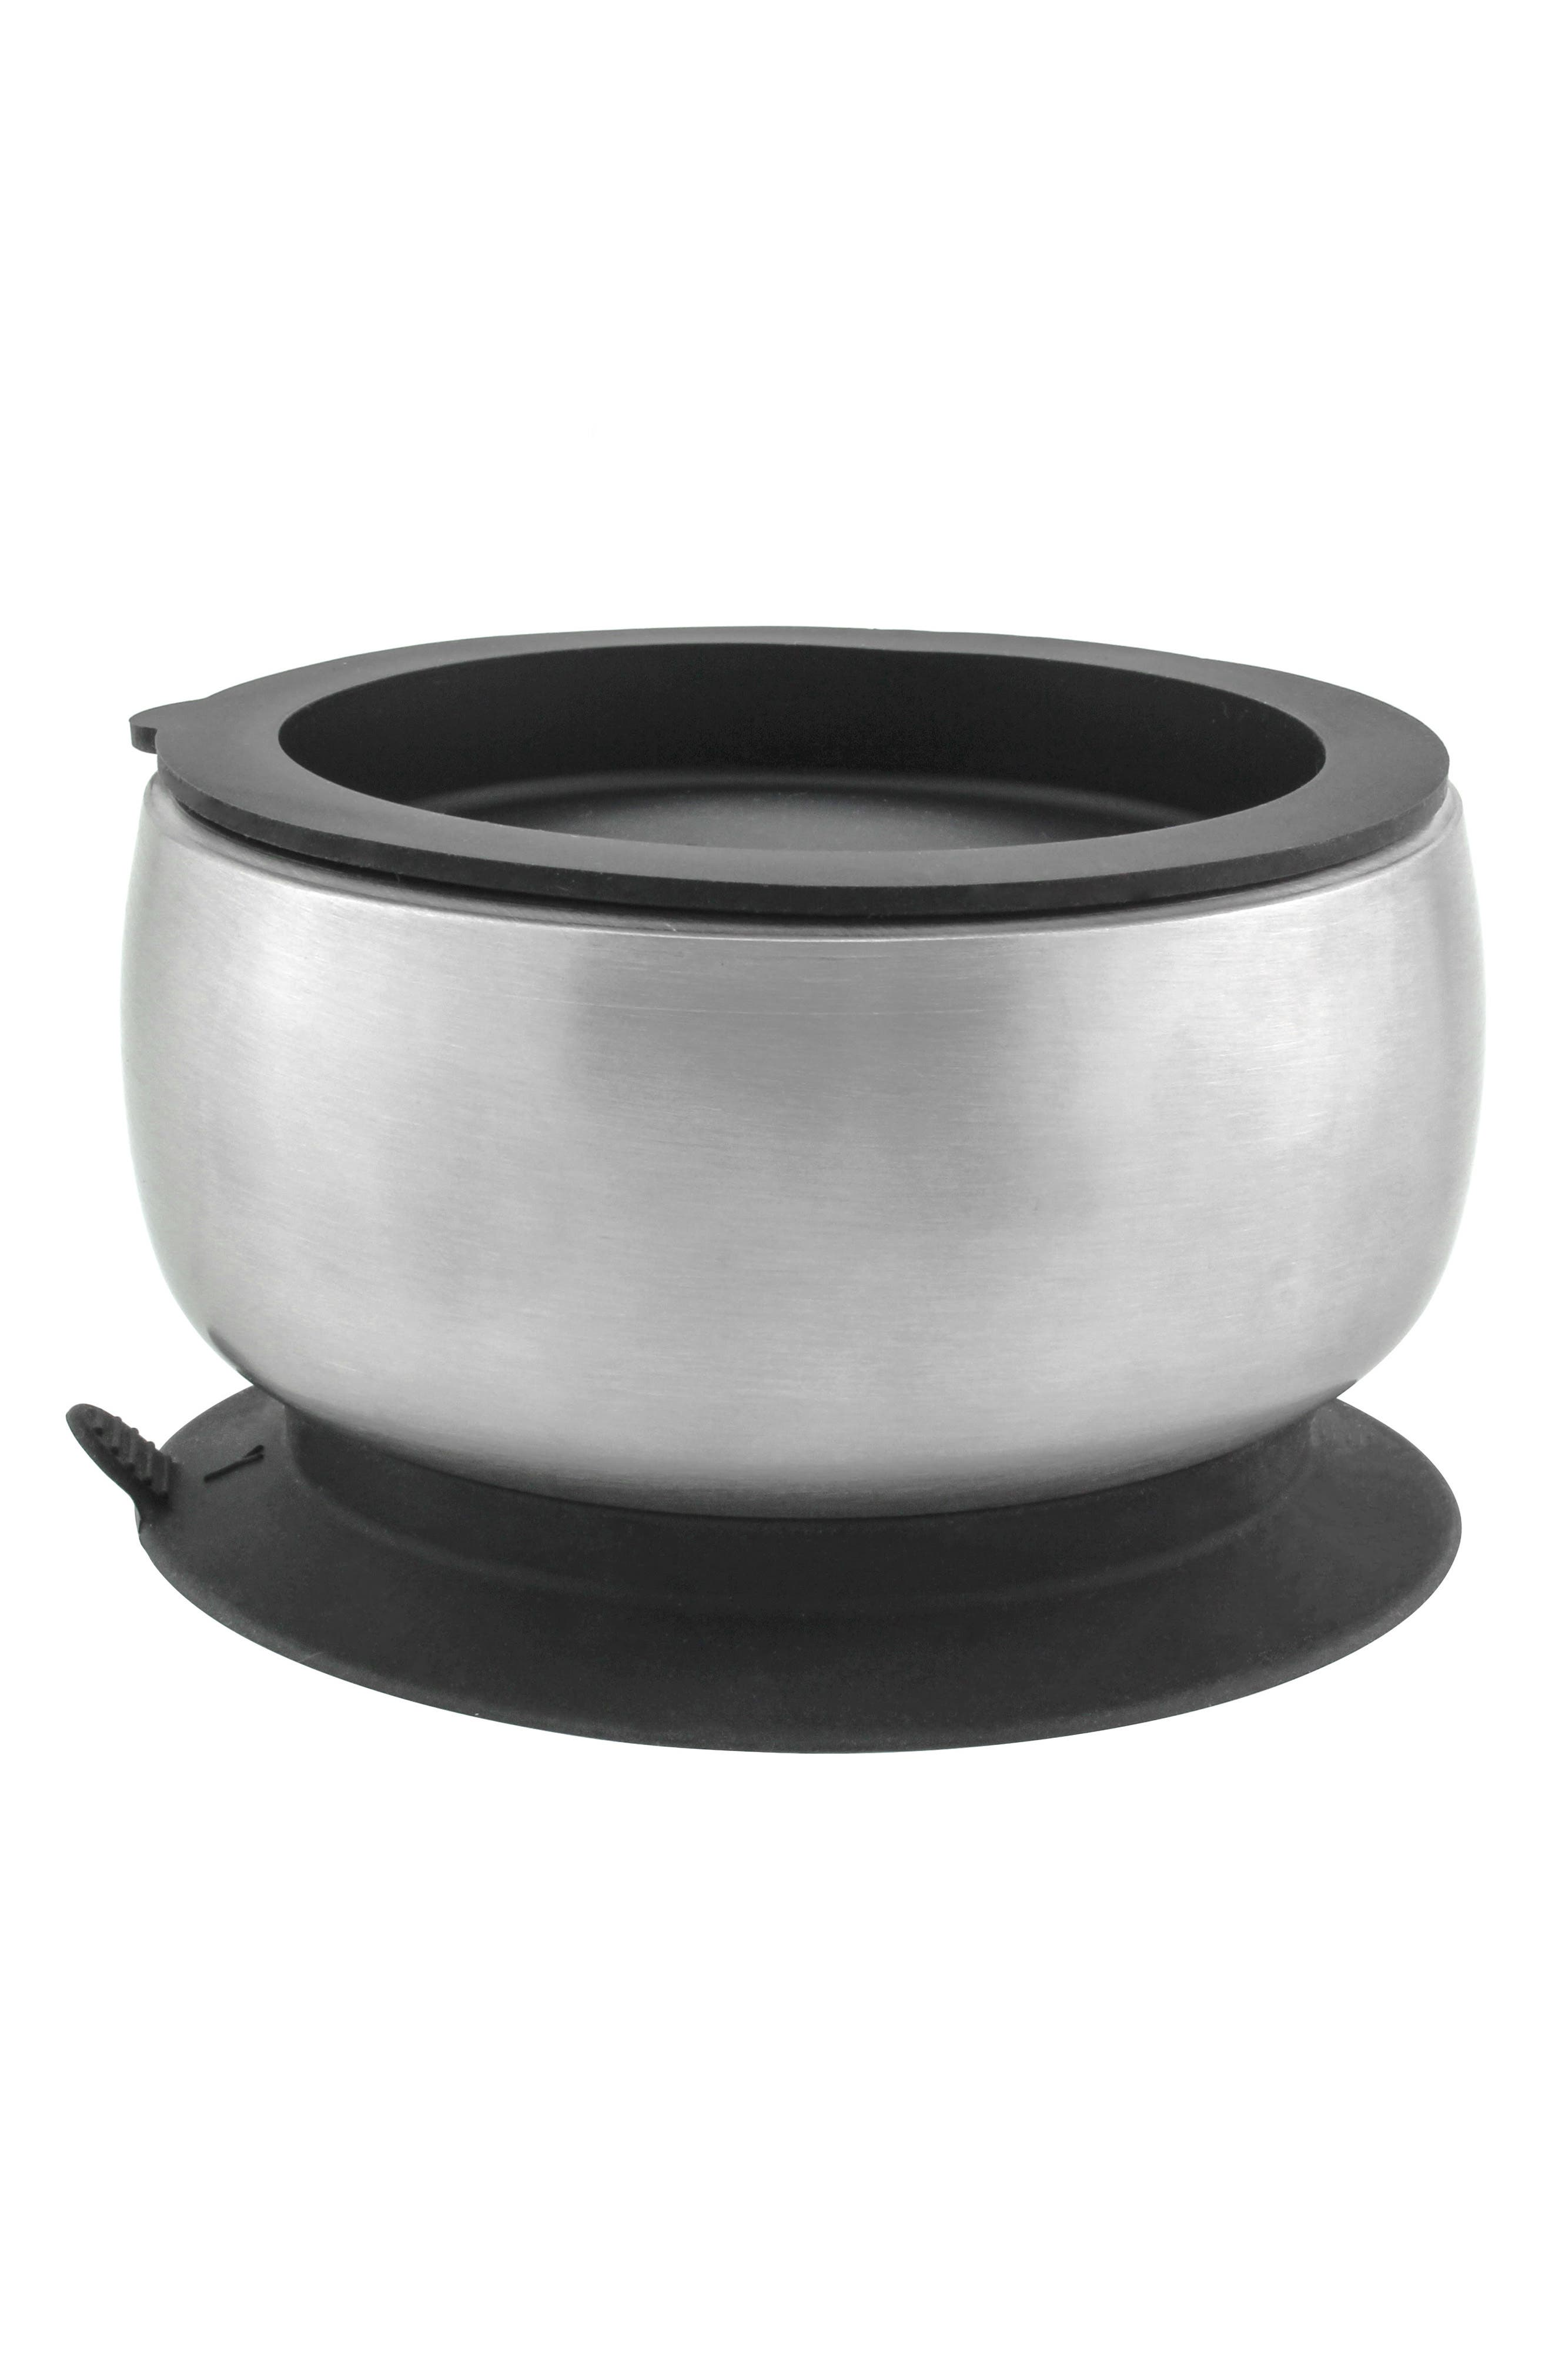 Stainless Steel Stay-Put Suction Bowl & Lid,                             Alternate thumbnail 3, color,                             BLACK